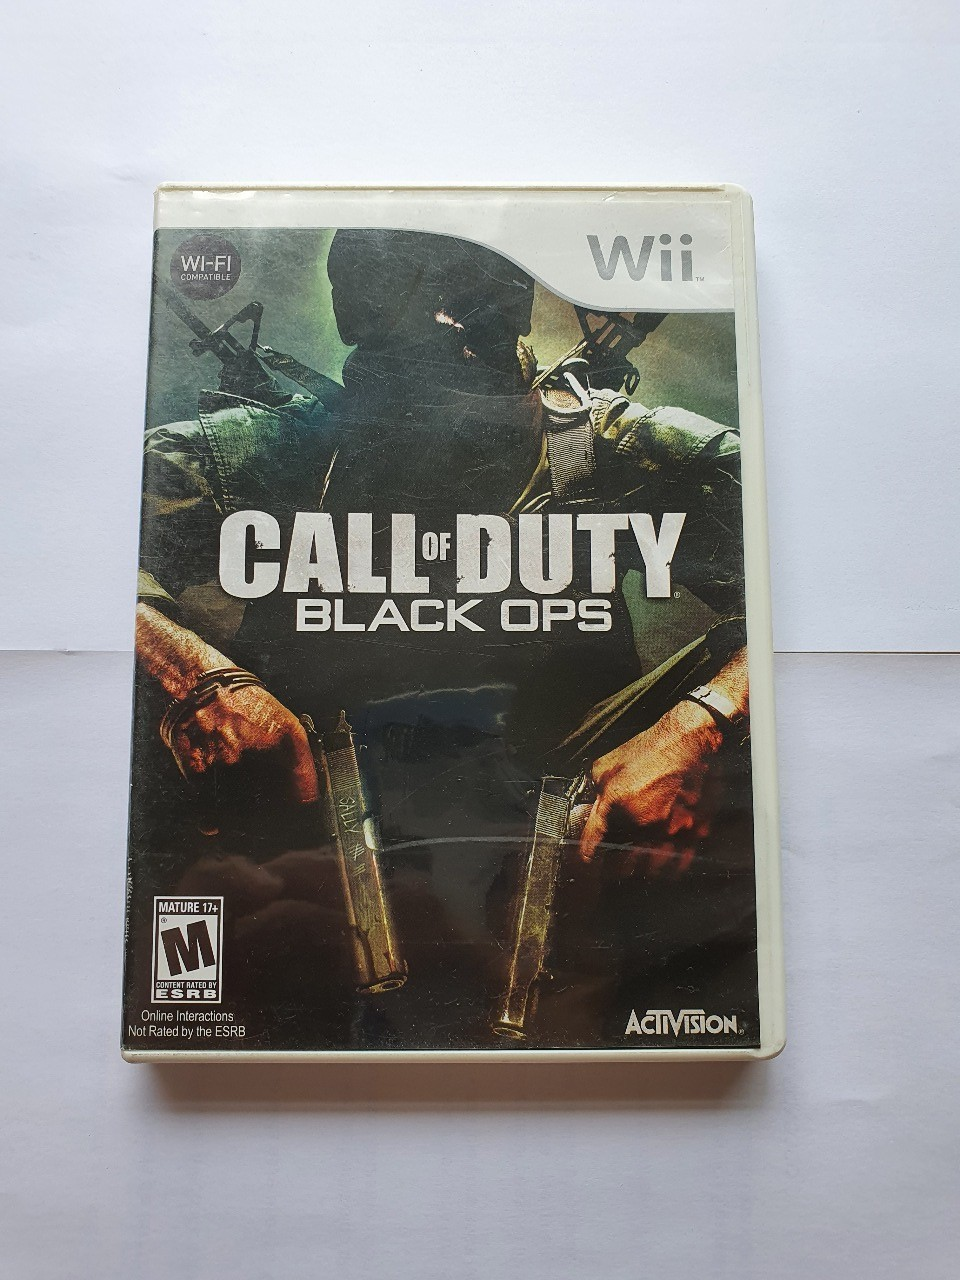 Call of Duty Black Ops - Usado - Wii